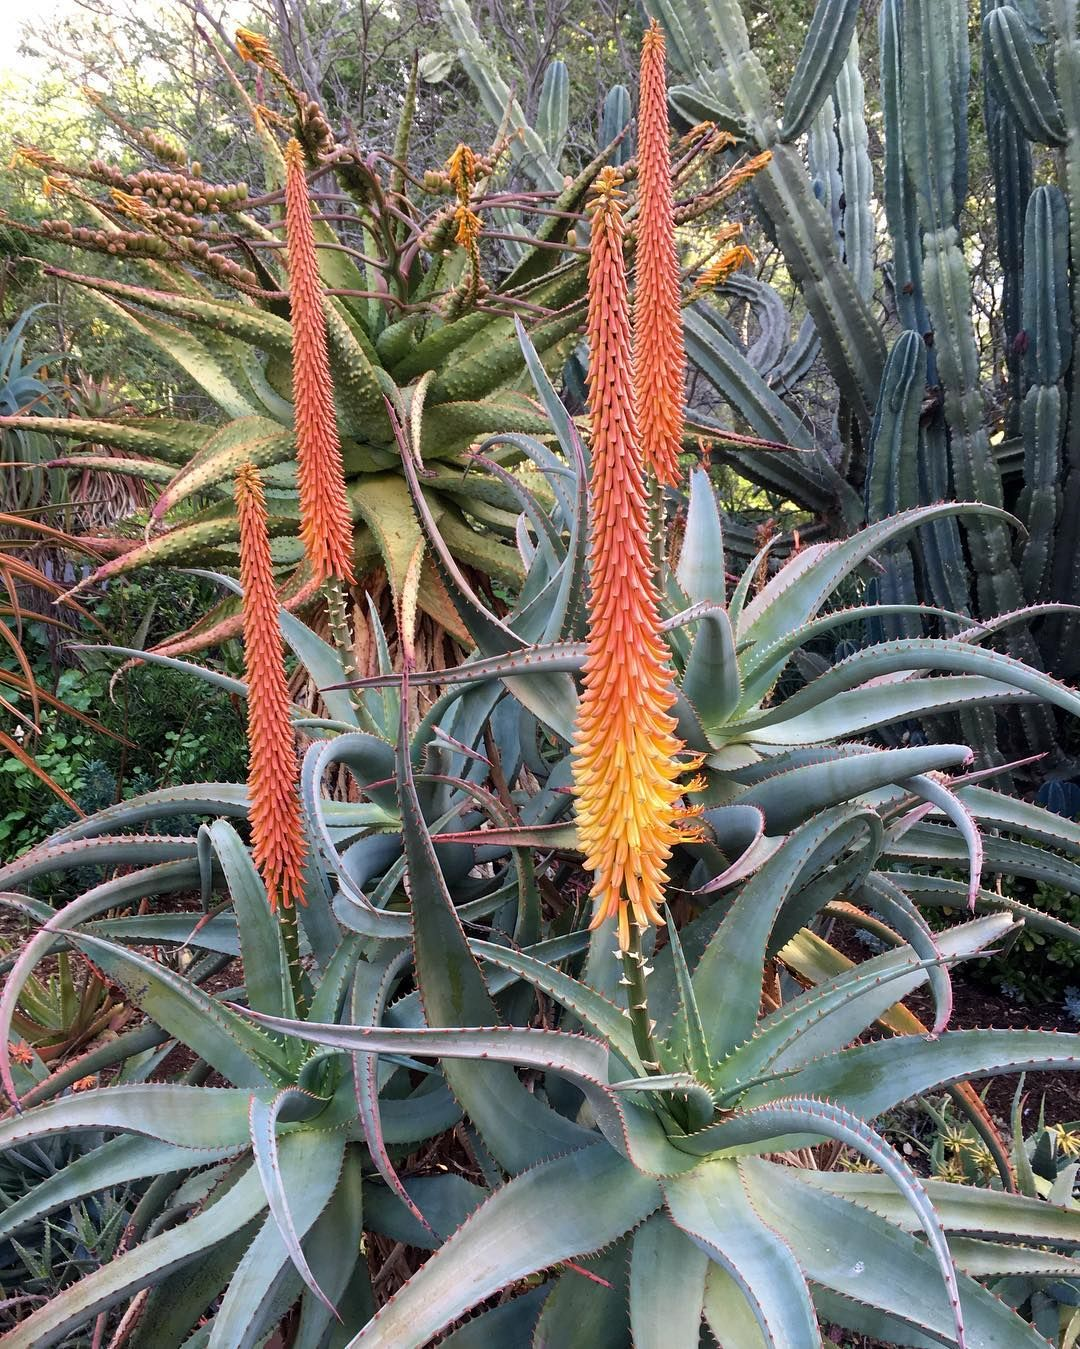 Aloe africana with a few flower buds beginning to open. A